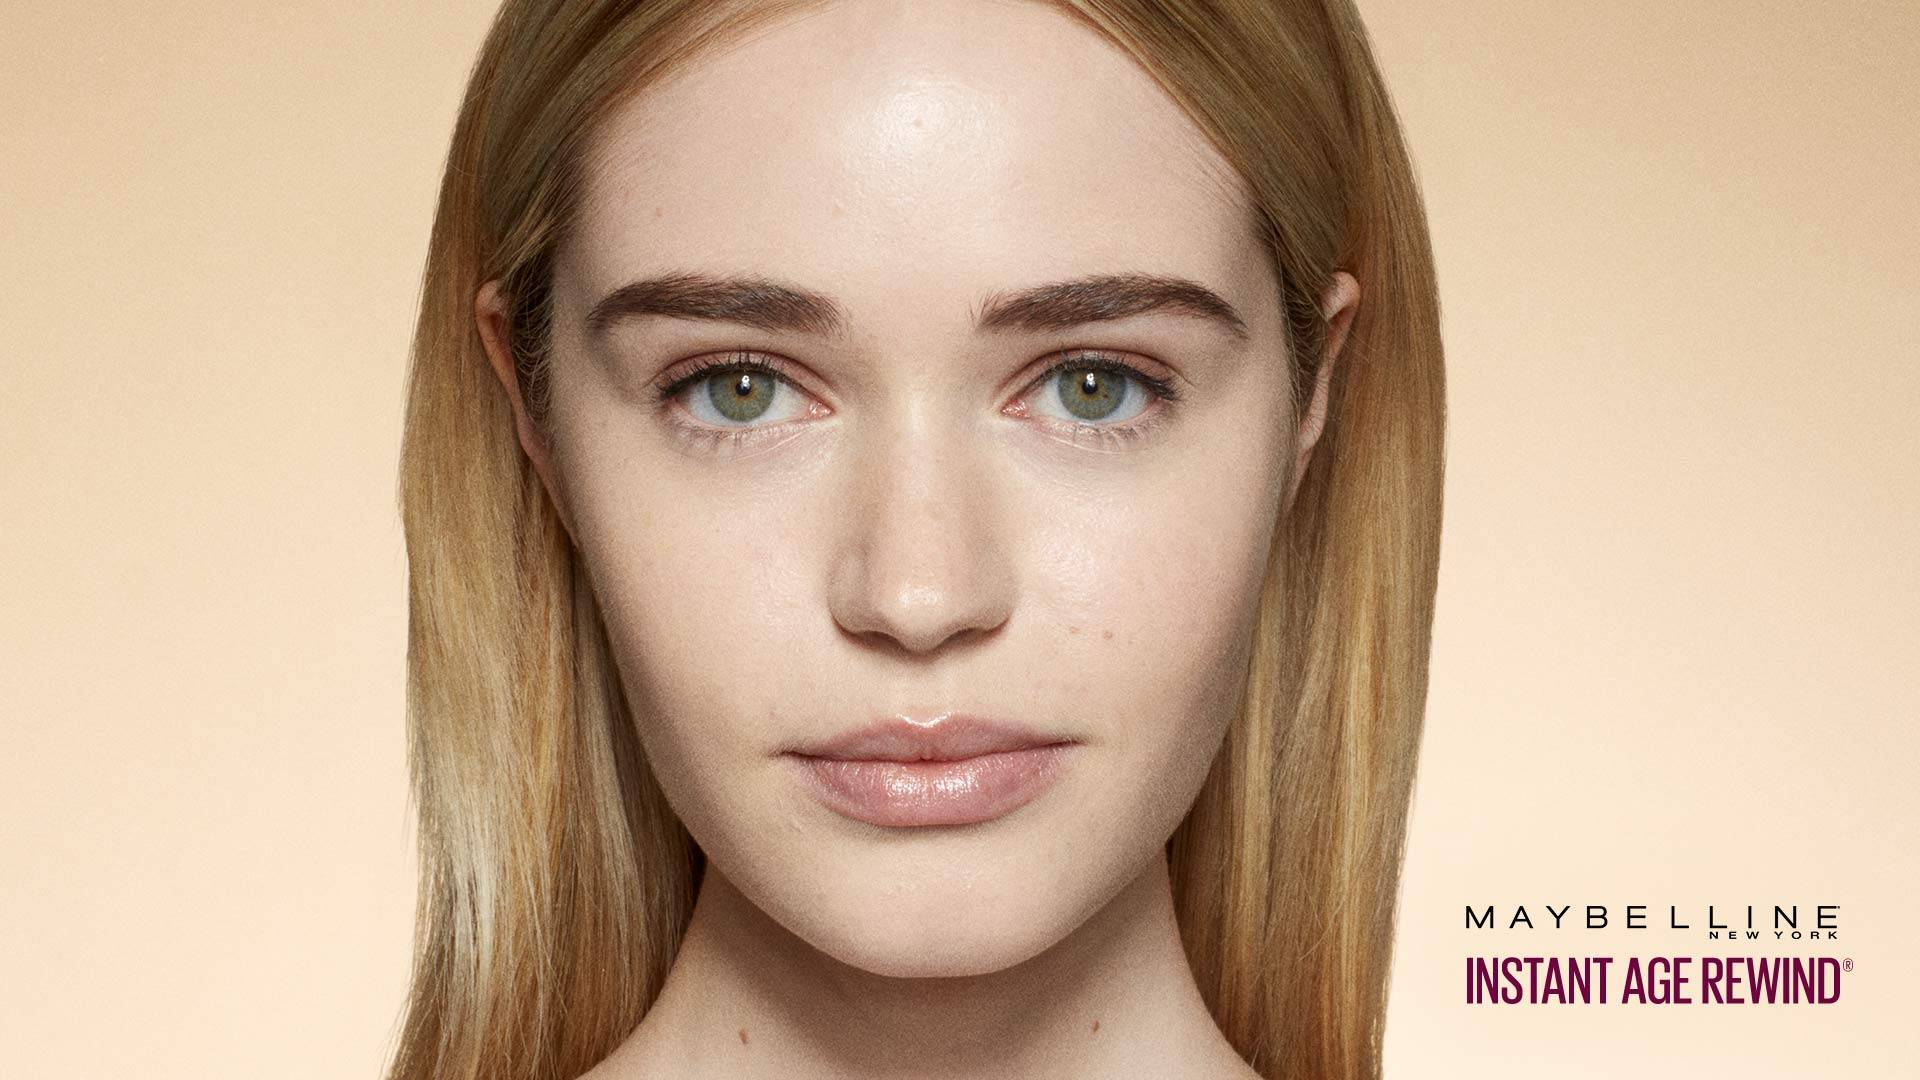 maybelline-iar-concealer-beauty-look-video-promoted